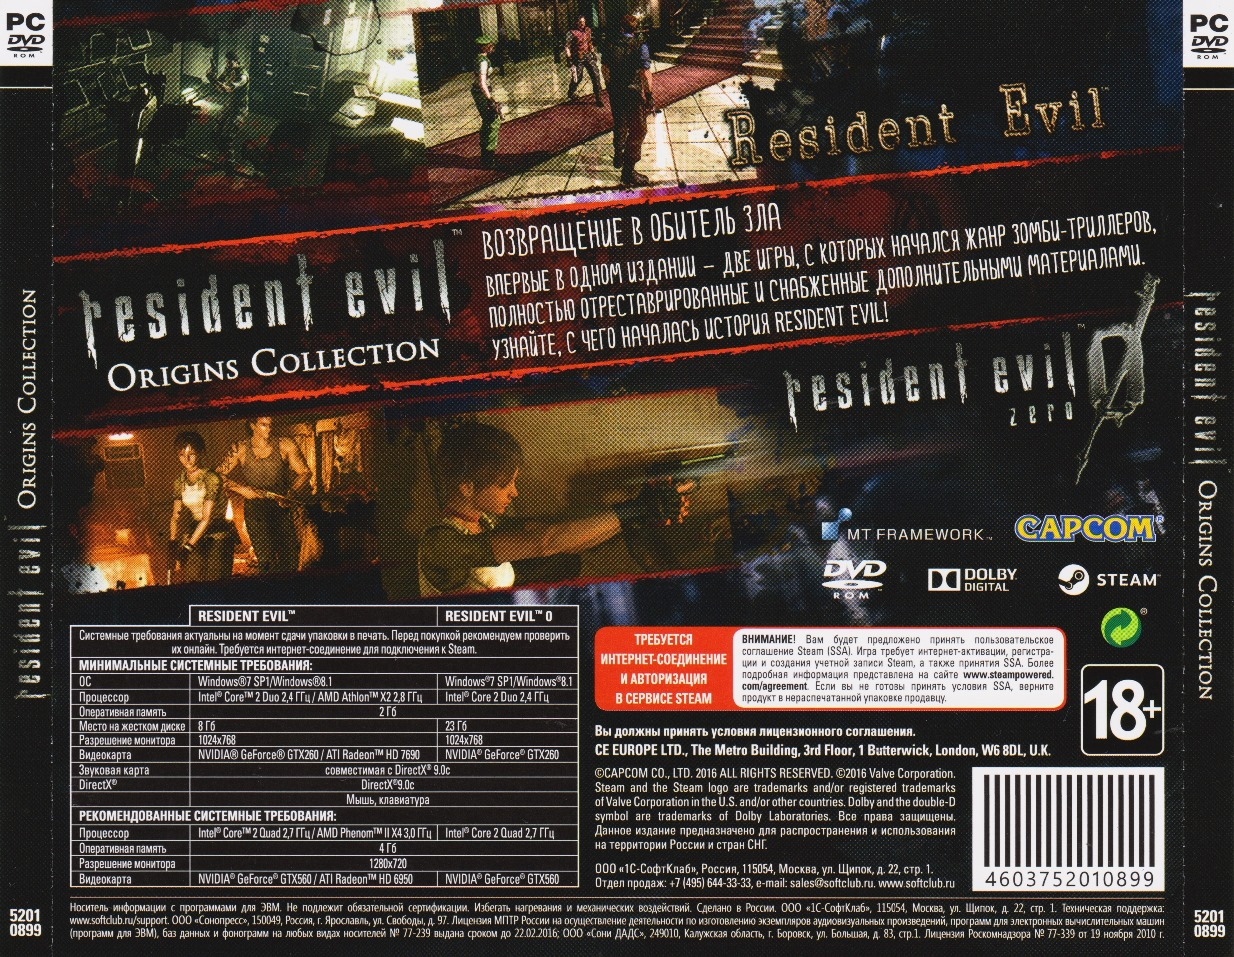 Resident Evil Origins Collection - STEAM (Photo CD-Key)